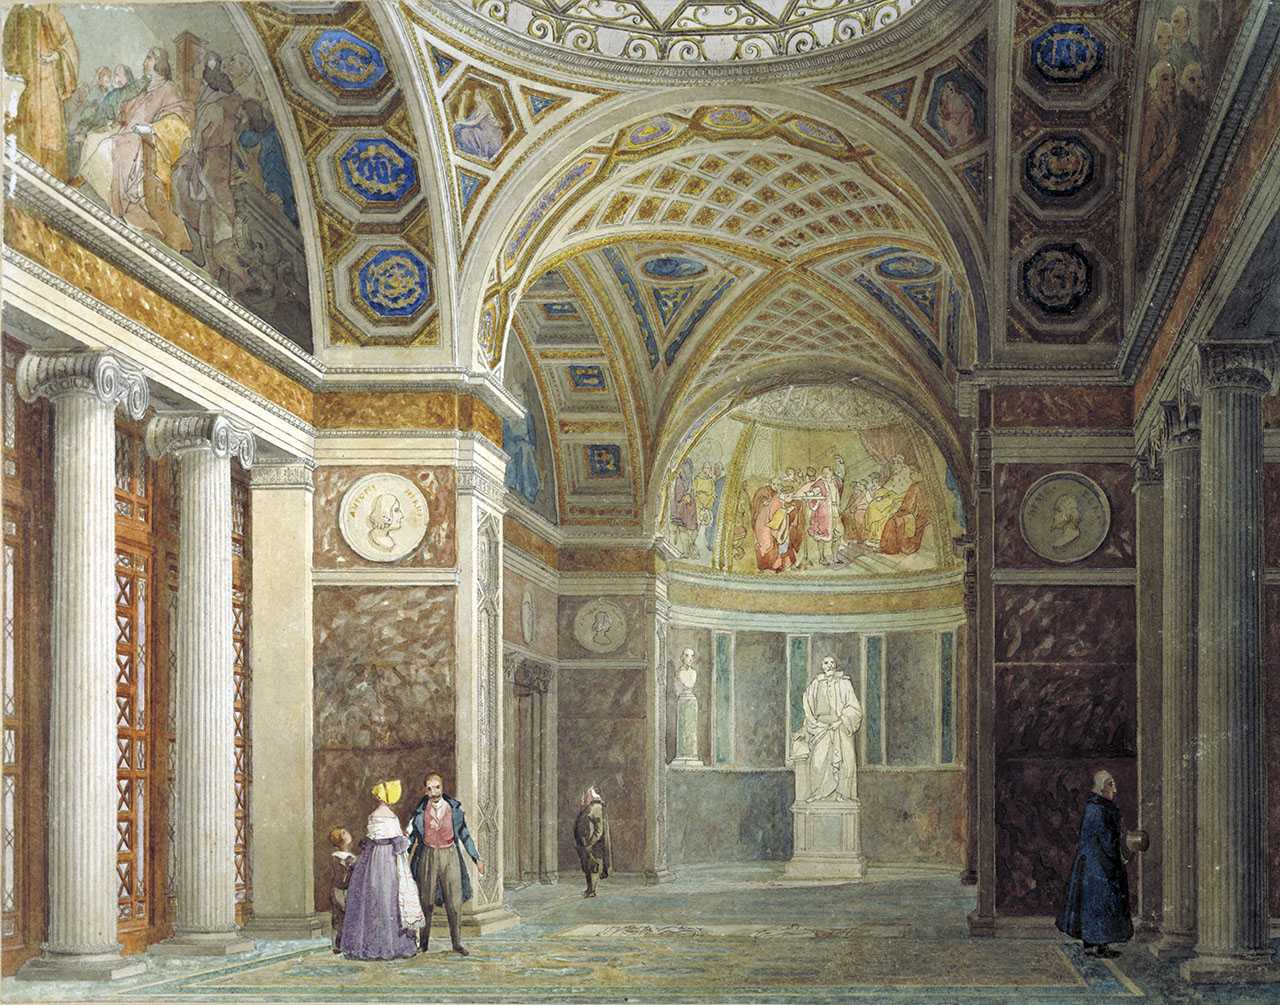 Giuseppe Martelli, Vestibule and part of the interior of the Tribune of Galileo, c. 1841. Florence, Gabinetto Disegni e Stampe e degli Uffizi